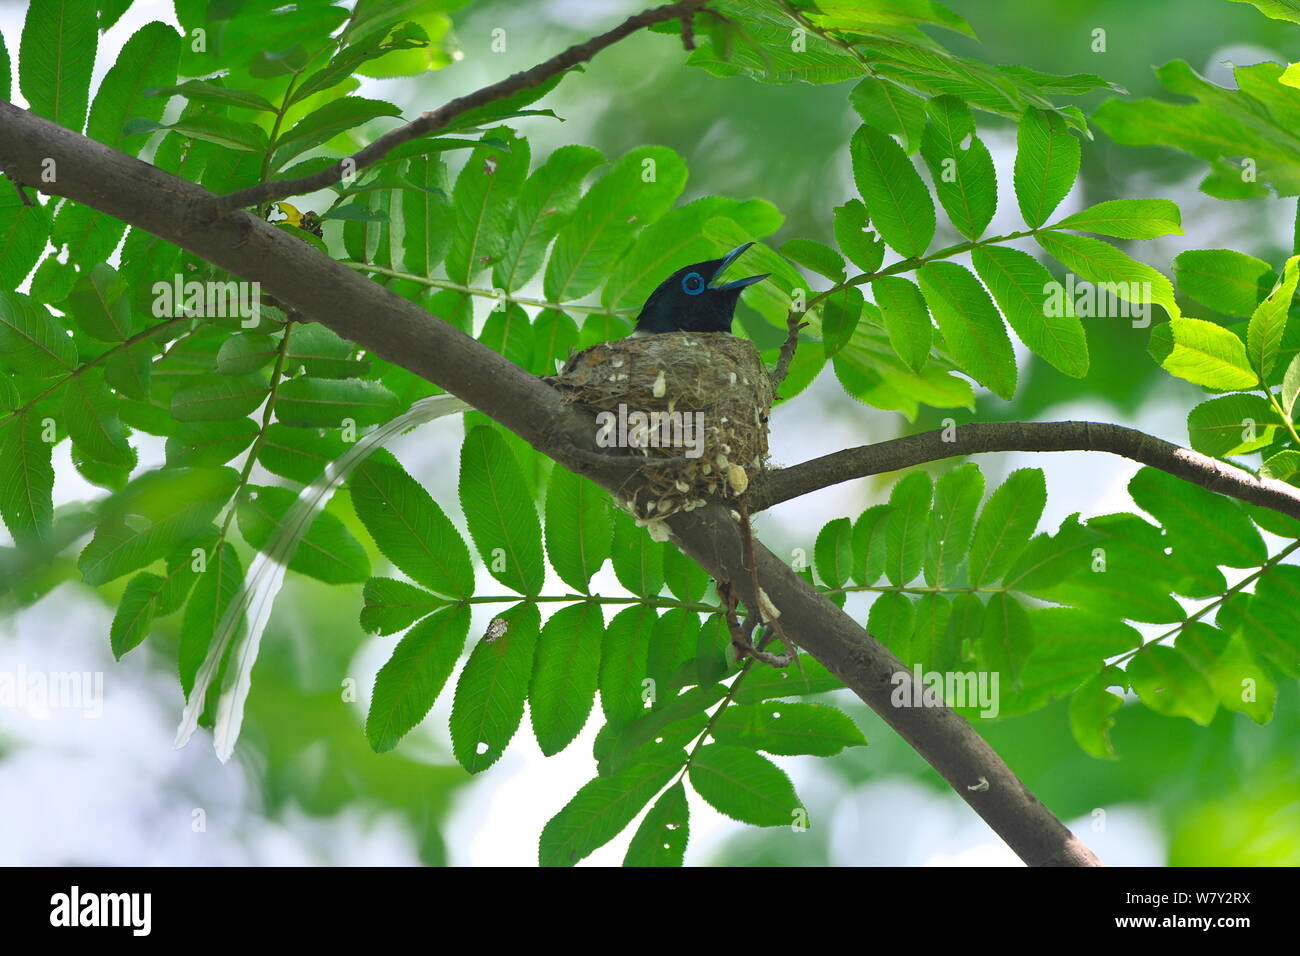 Asian paradise-flycatcher (Terpsiphone paradisi) perched, Shanyang town, Gutian County, Hubei province, China. Stock Photo